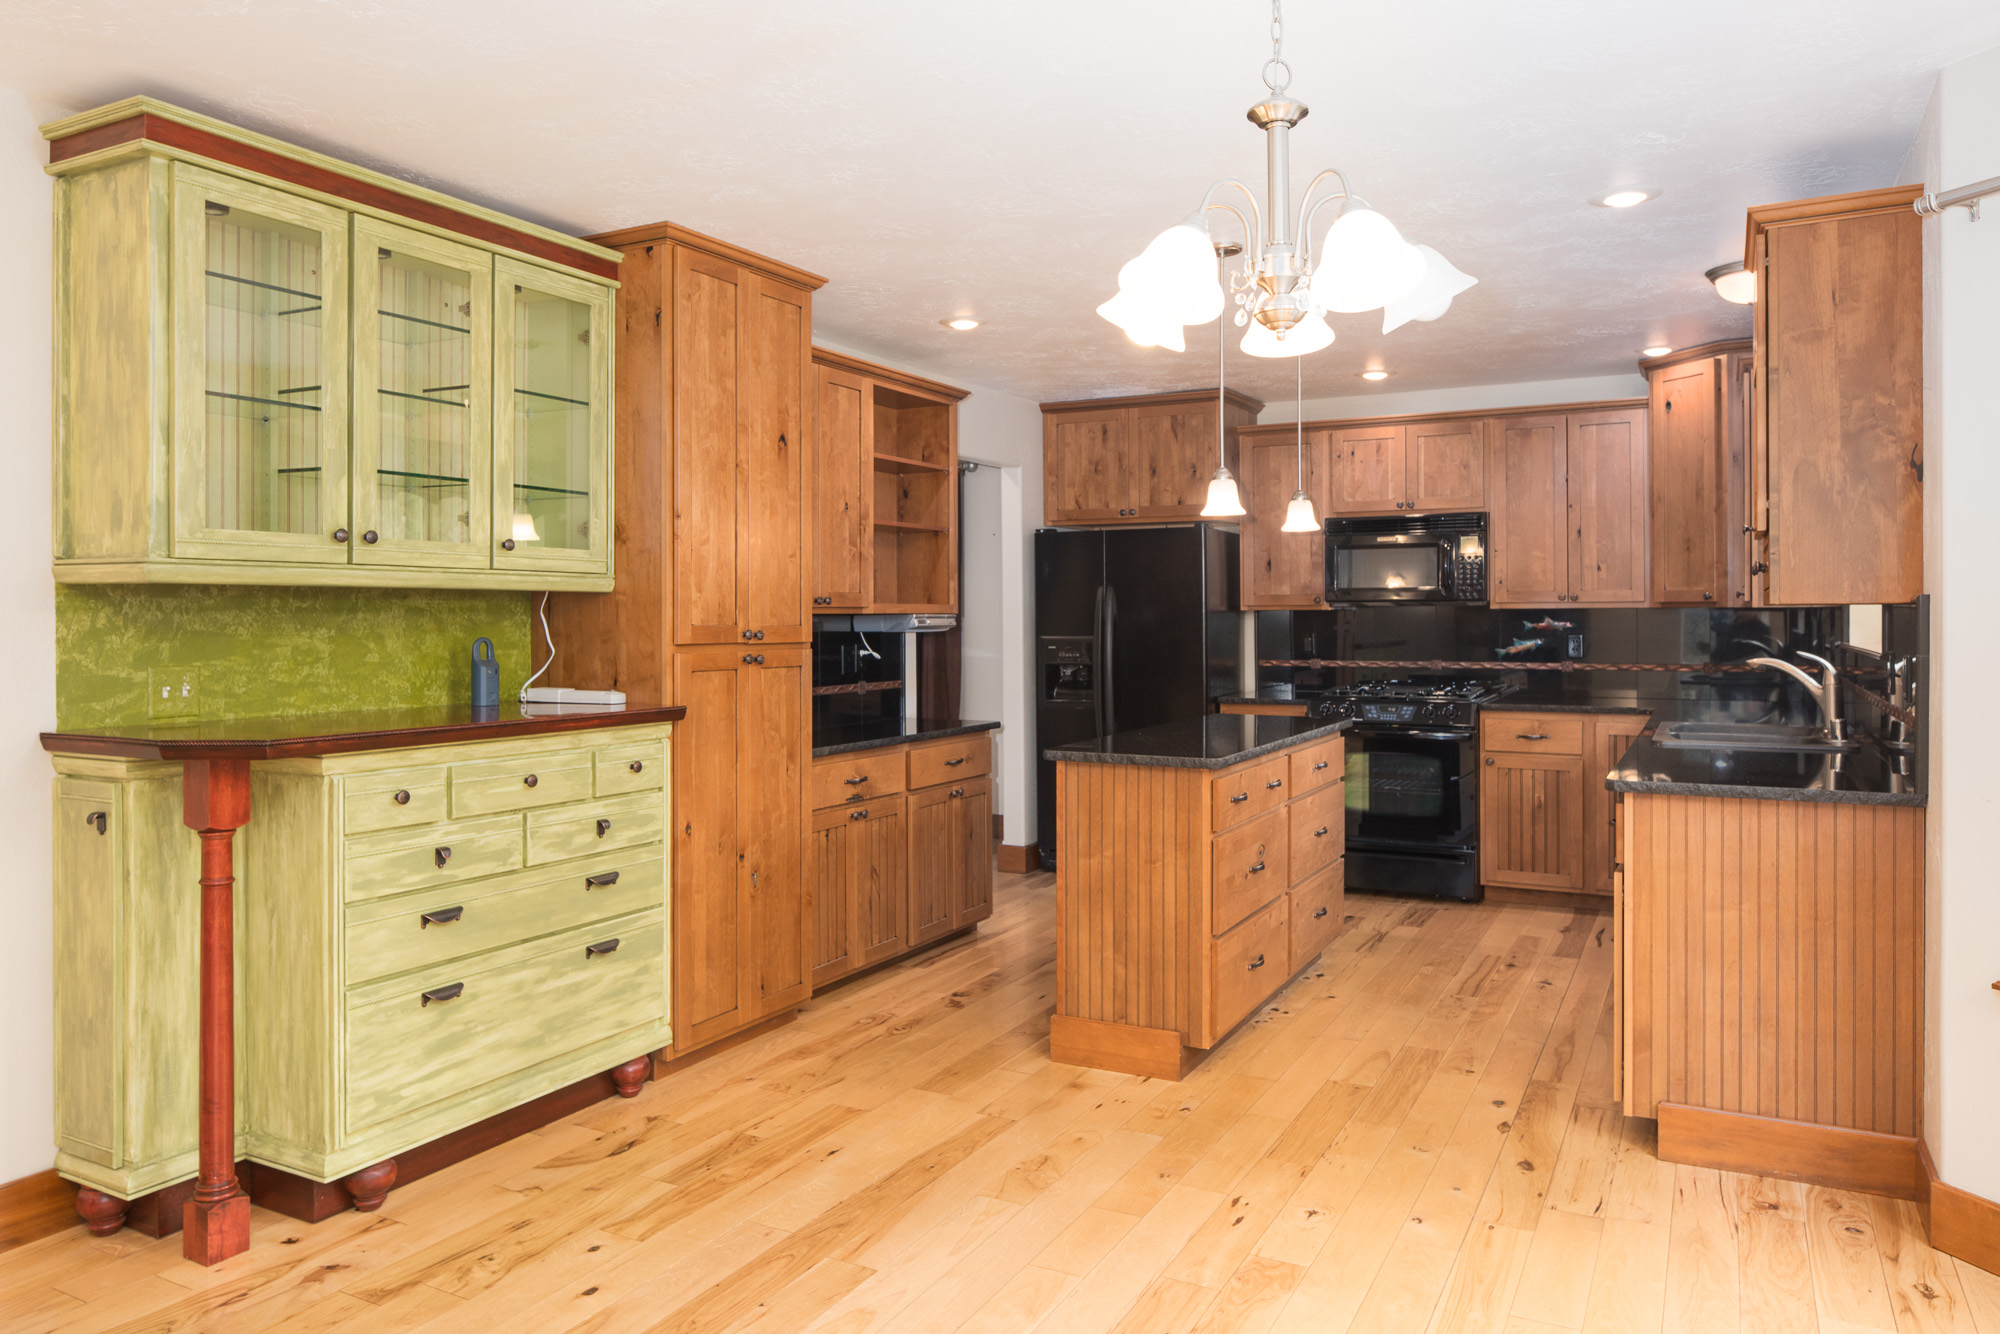 Virtual staging rl miller photography rl miller photography What to do with an empty room in your house